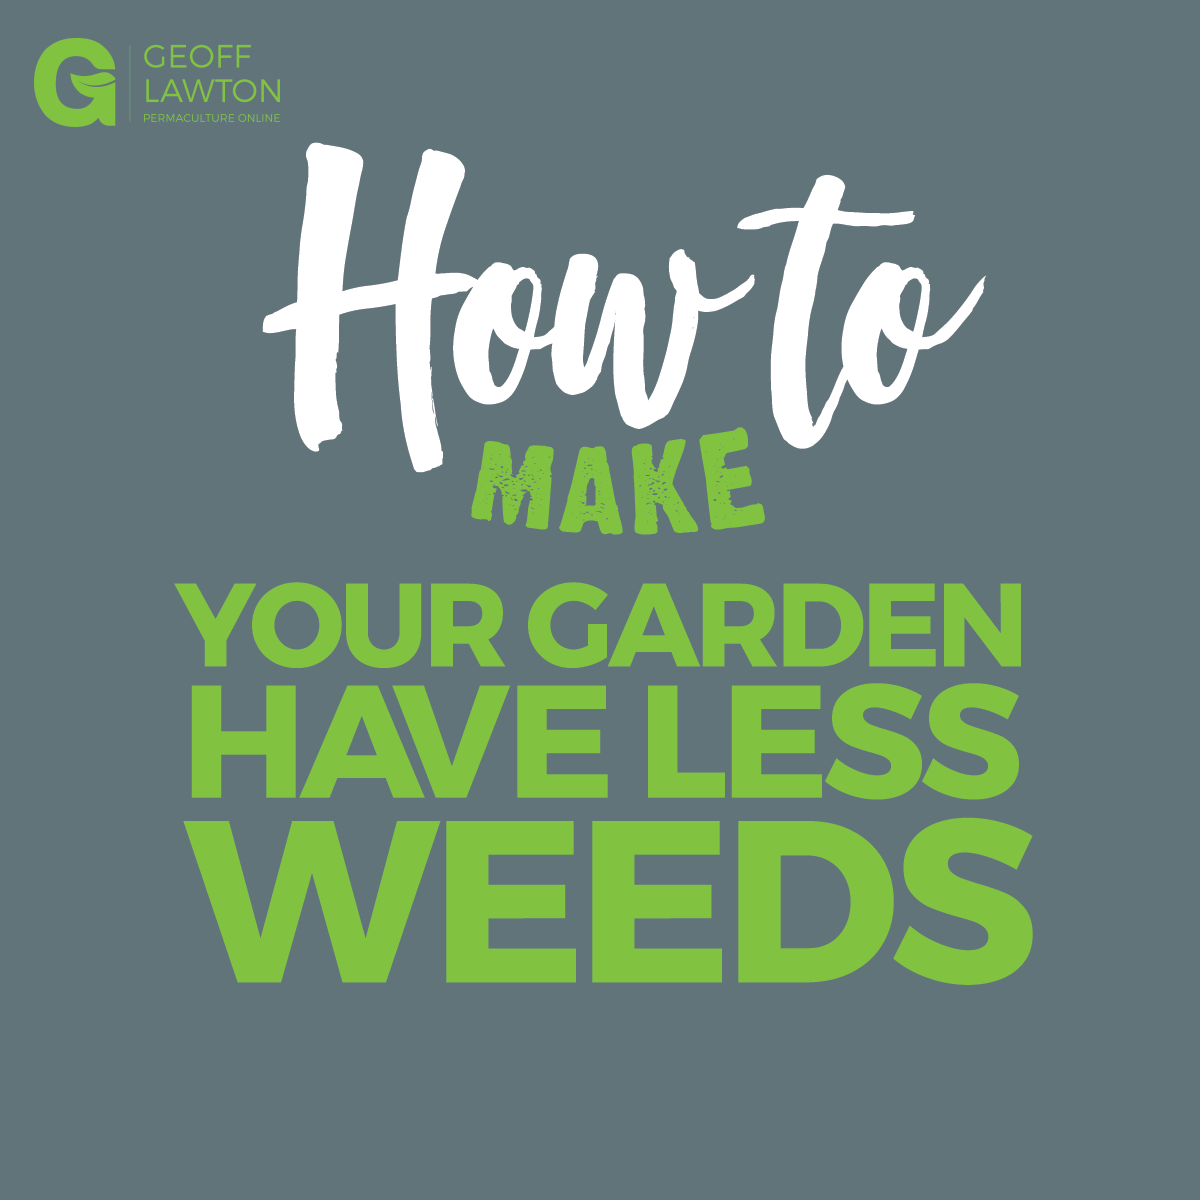 Photo of How to make your garden have less weeds?